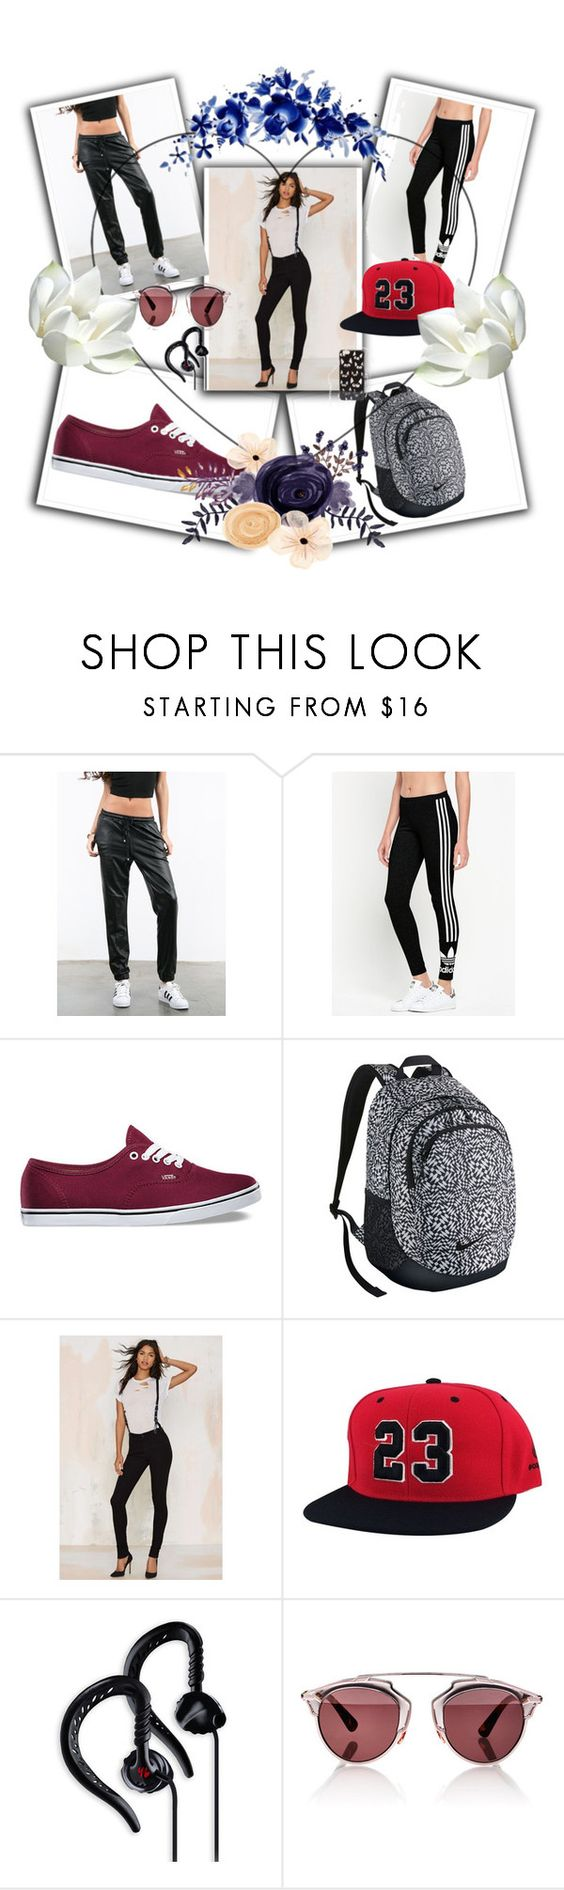 """""""Untitled #20"""" by shadow-168 ❤ liked on Polyvore featuring Sans Souci, adidas Originals, Vans, NIKE, CourtShop, Yurbuds, Christian Dior and ASOS"""